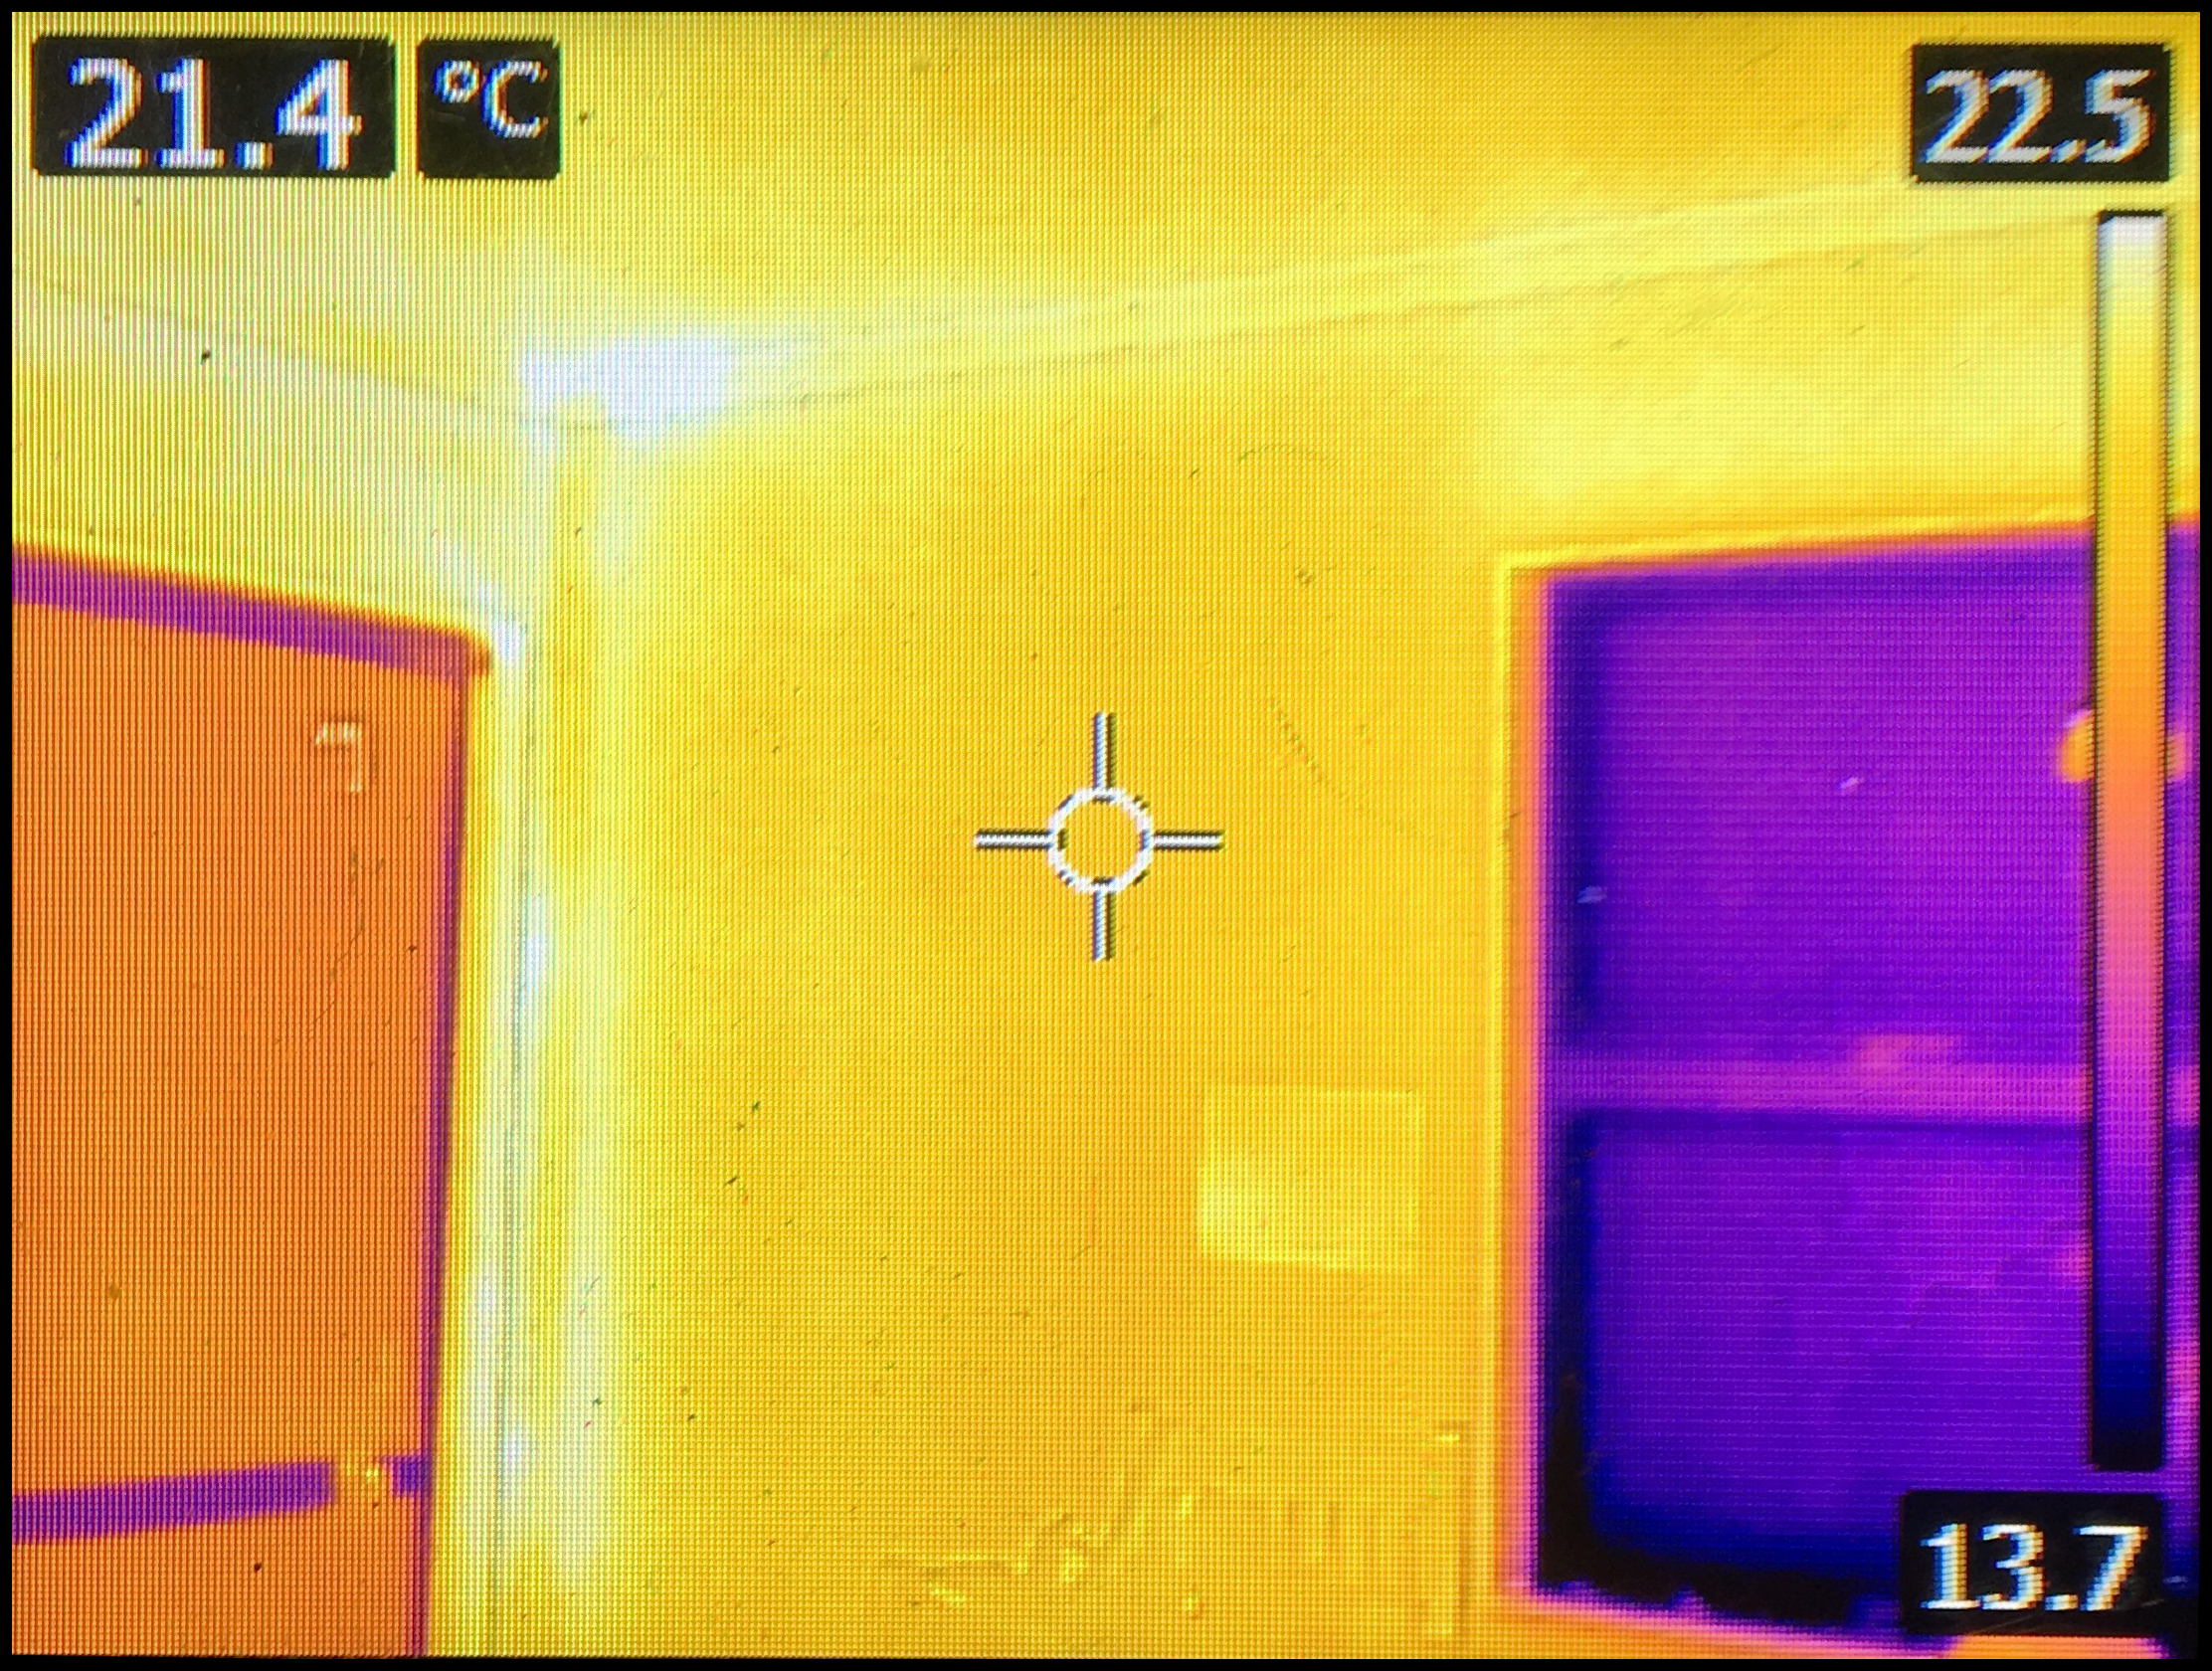 Easyfix window insulation seen by thermal image